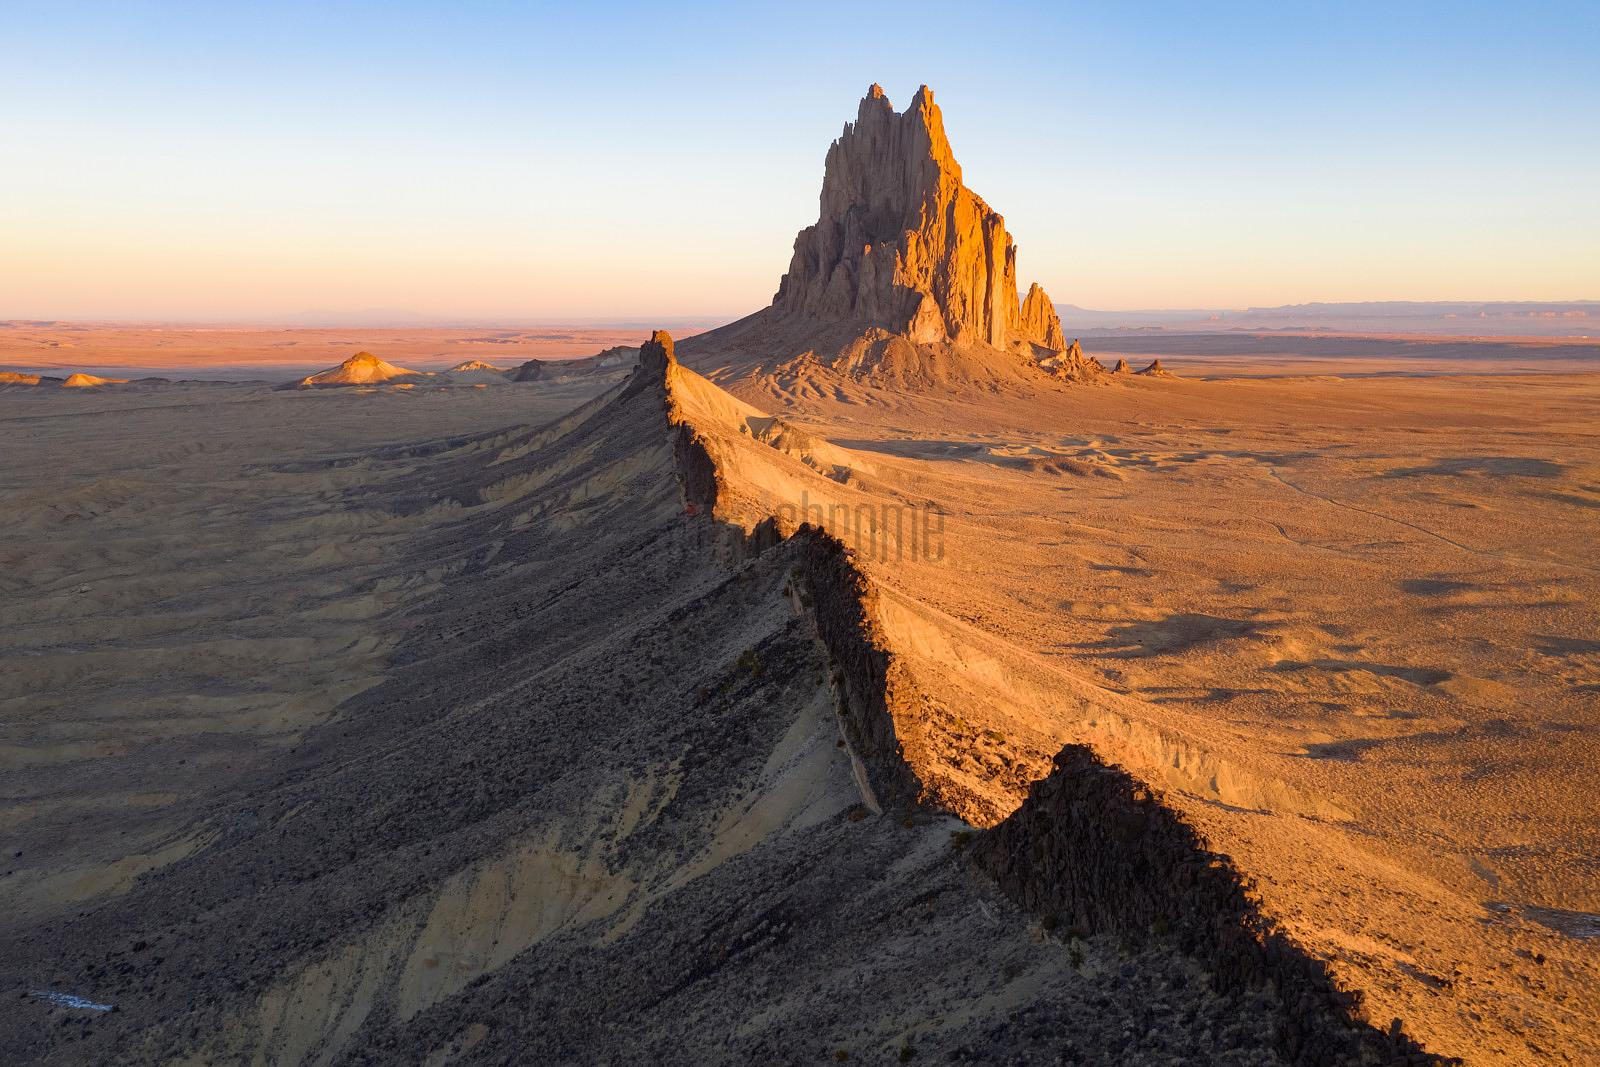 Aerial View of Shiprock and a Volcanic Dyke